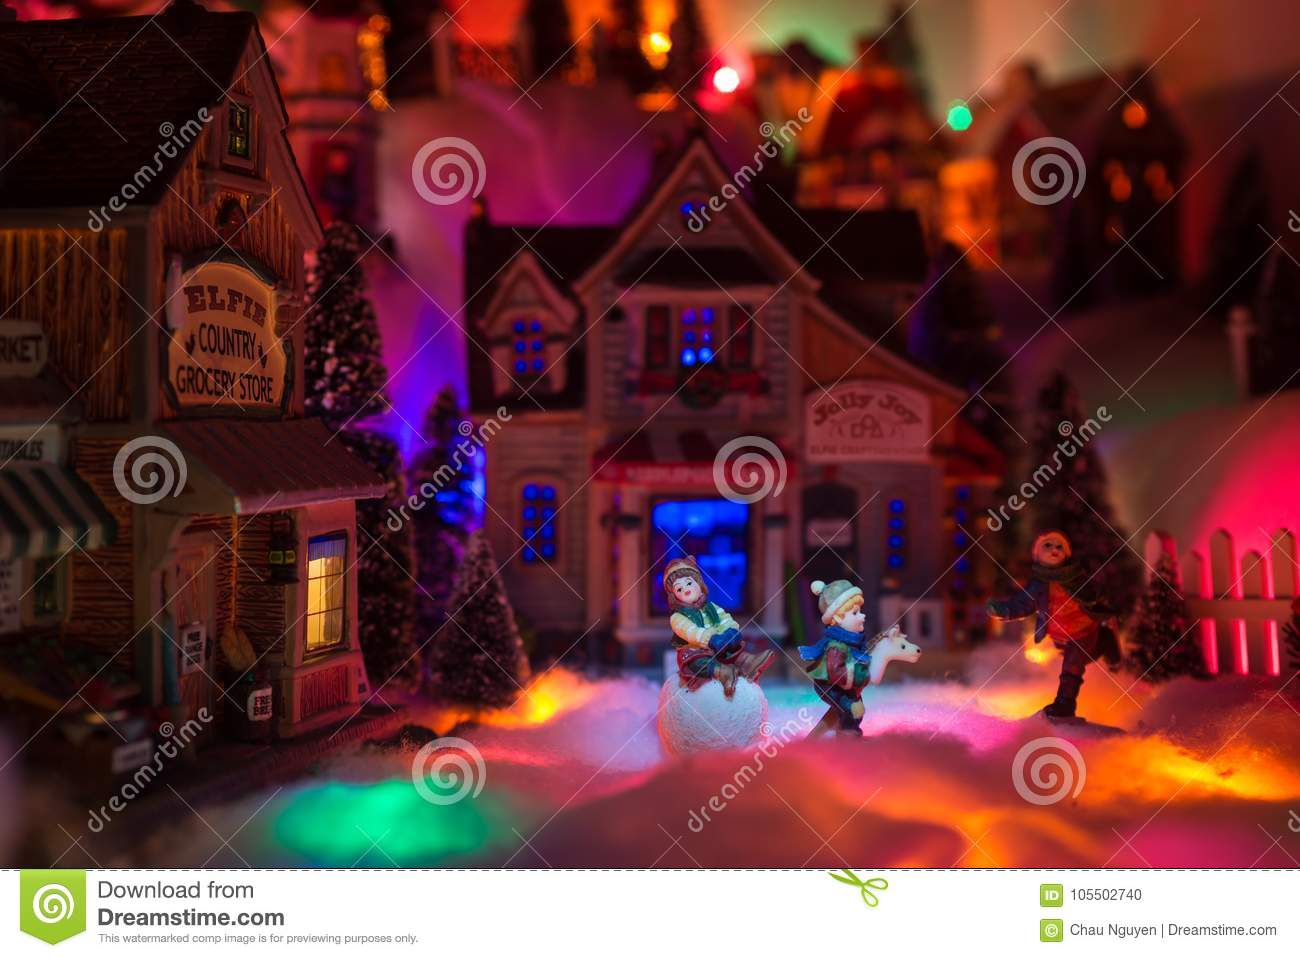 Christmas scenery concept with kids happy playing in snow in the